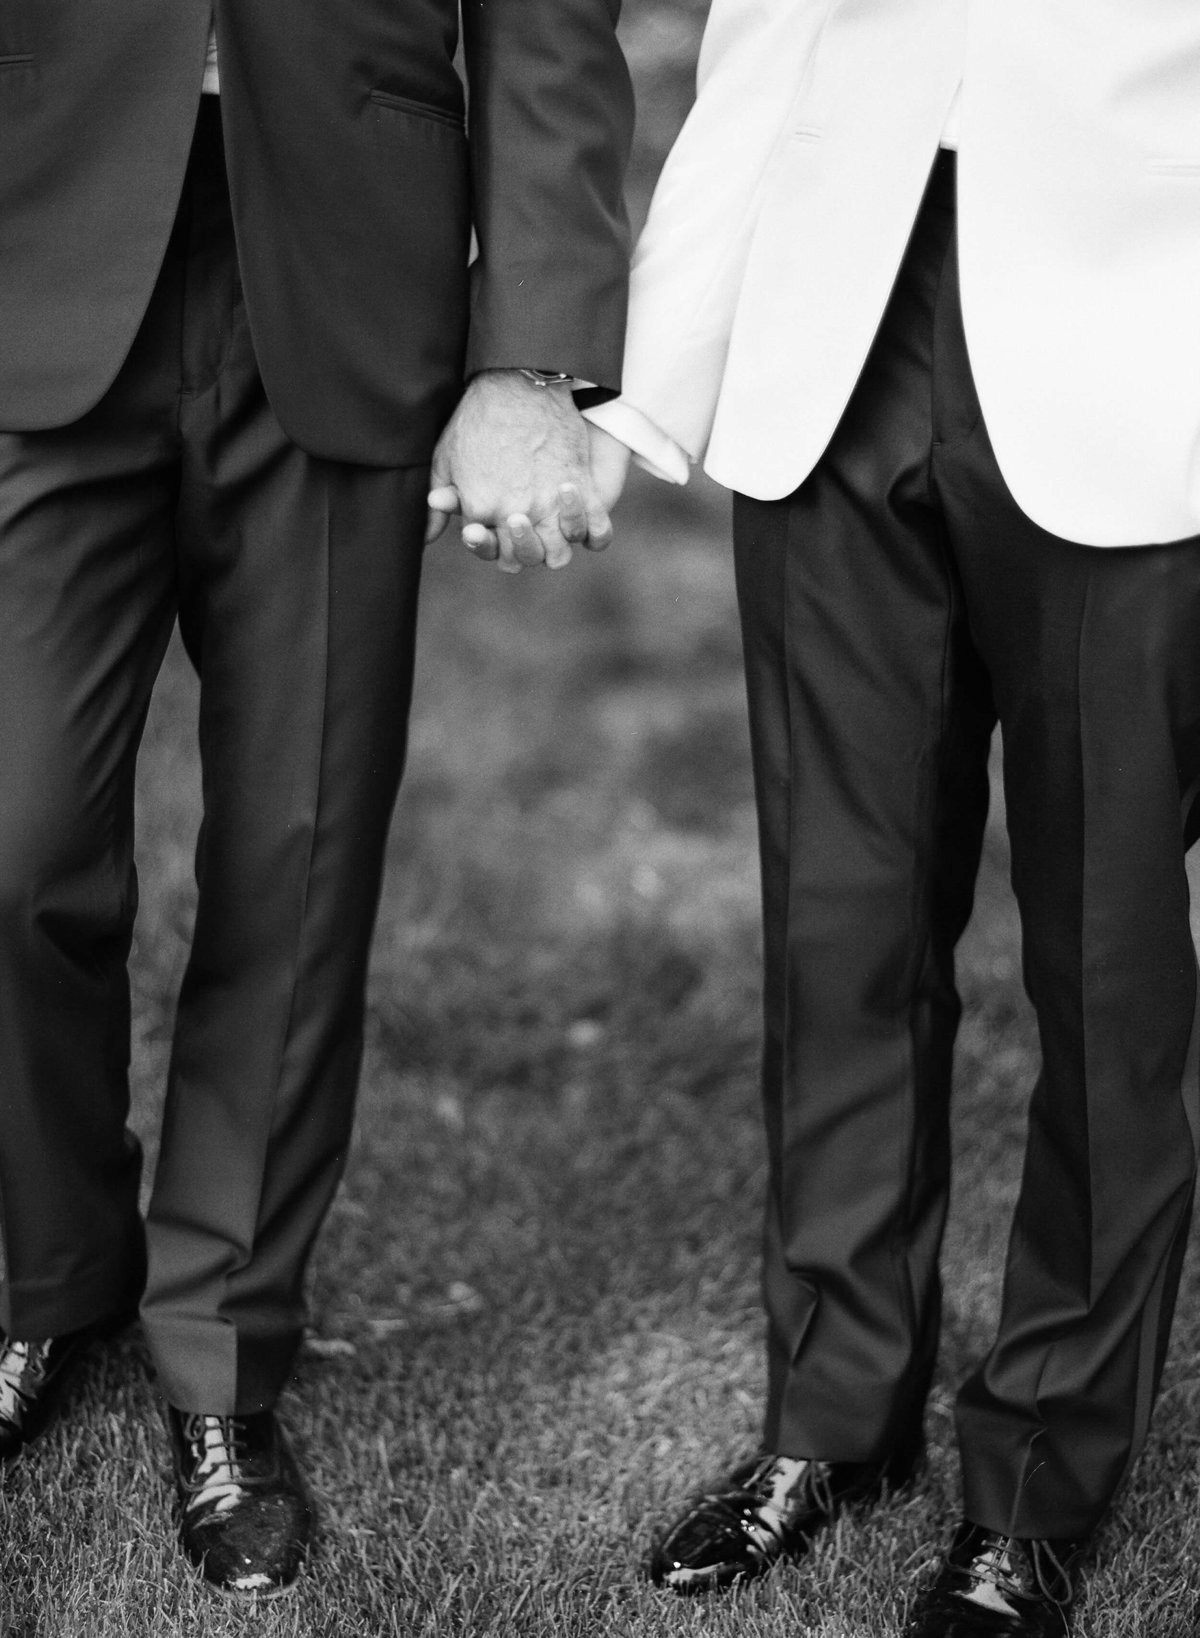 26-KTMerry-weddings-samesex-portrait